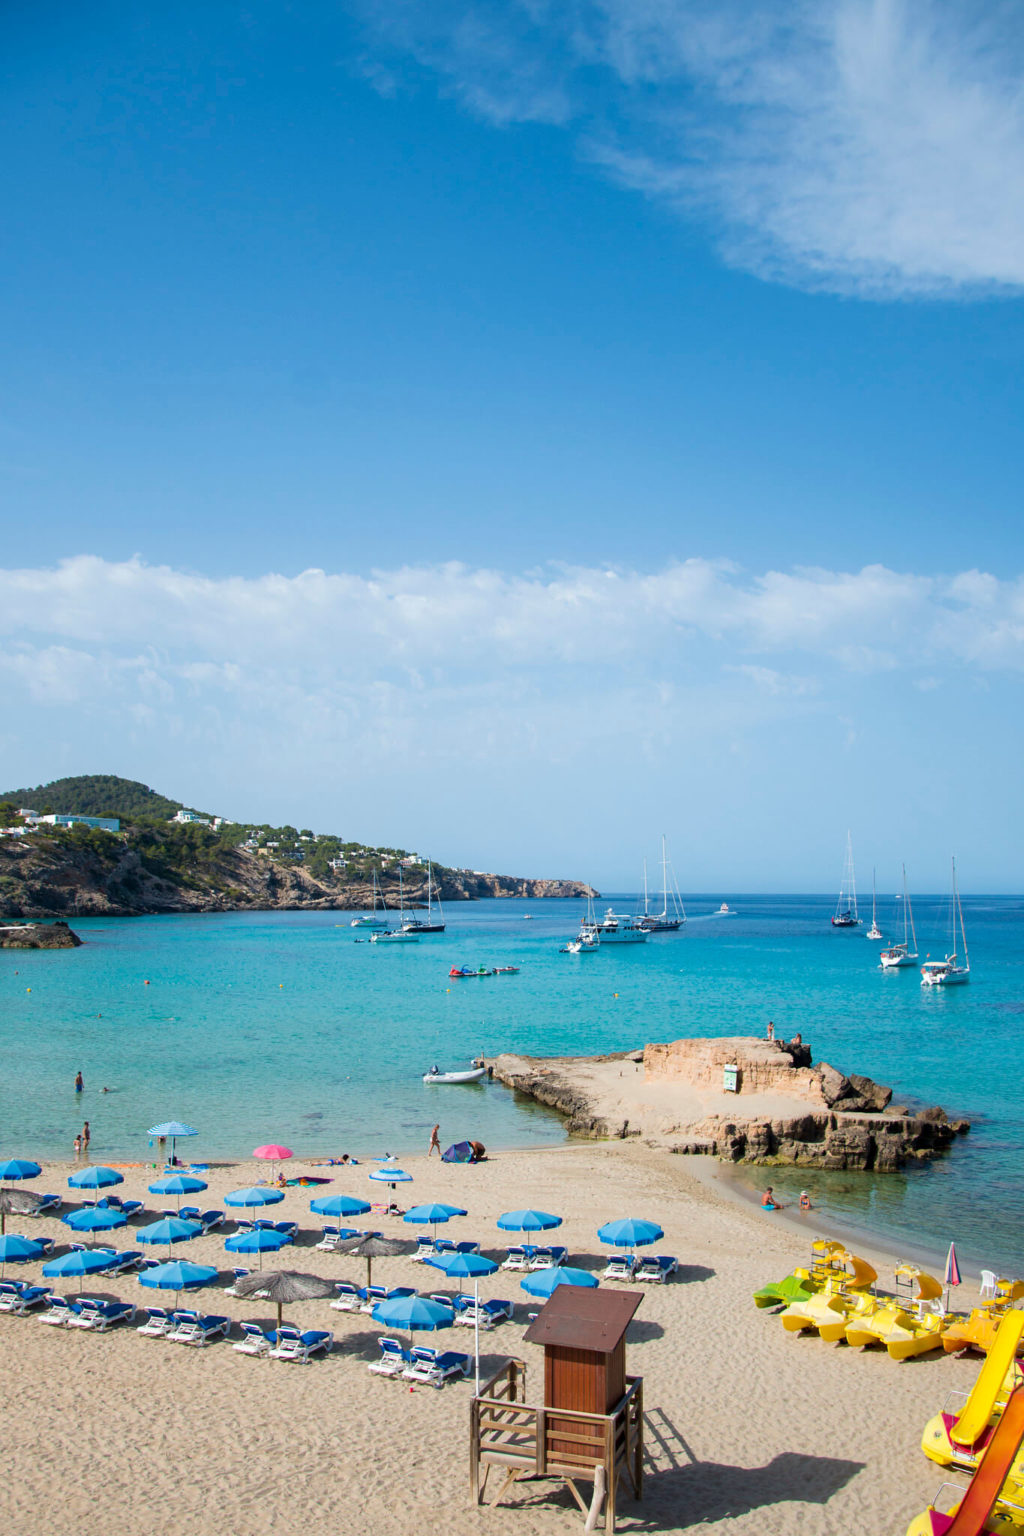 https://www.white-ibiza.com/wp-content/uploads/2020/03/ibiza-beaches-cala-tarida-07-1024x1536.jpg